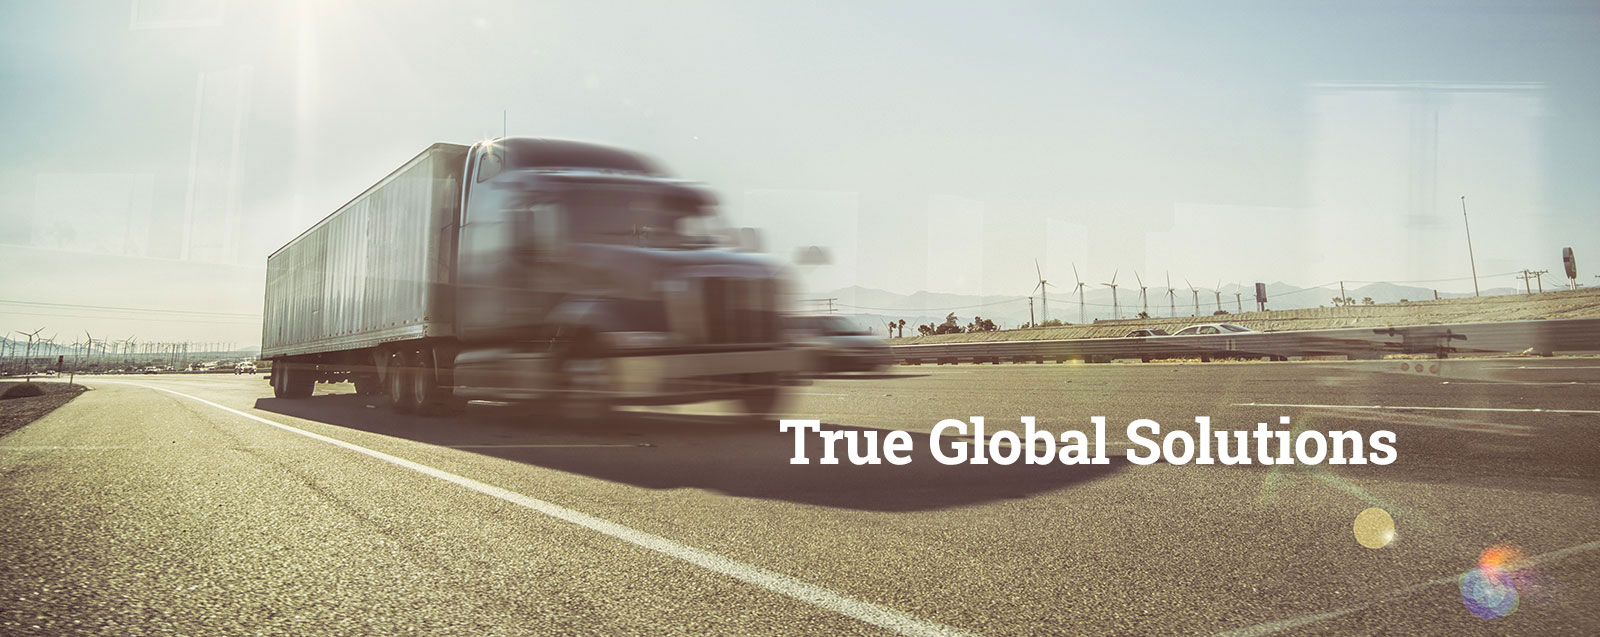 True Global Solutions